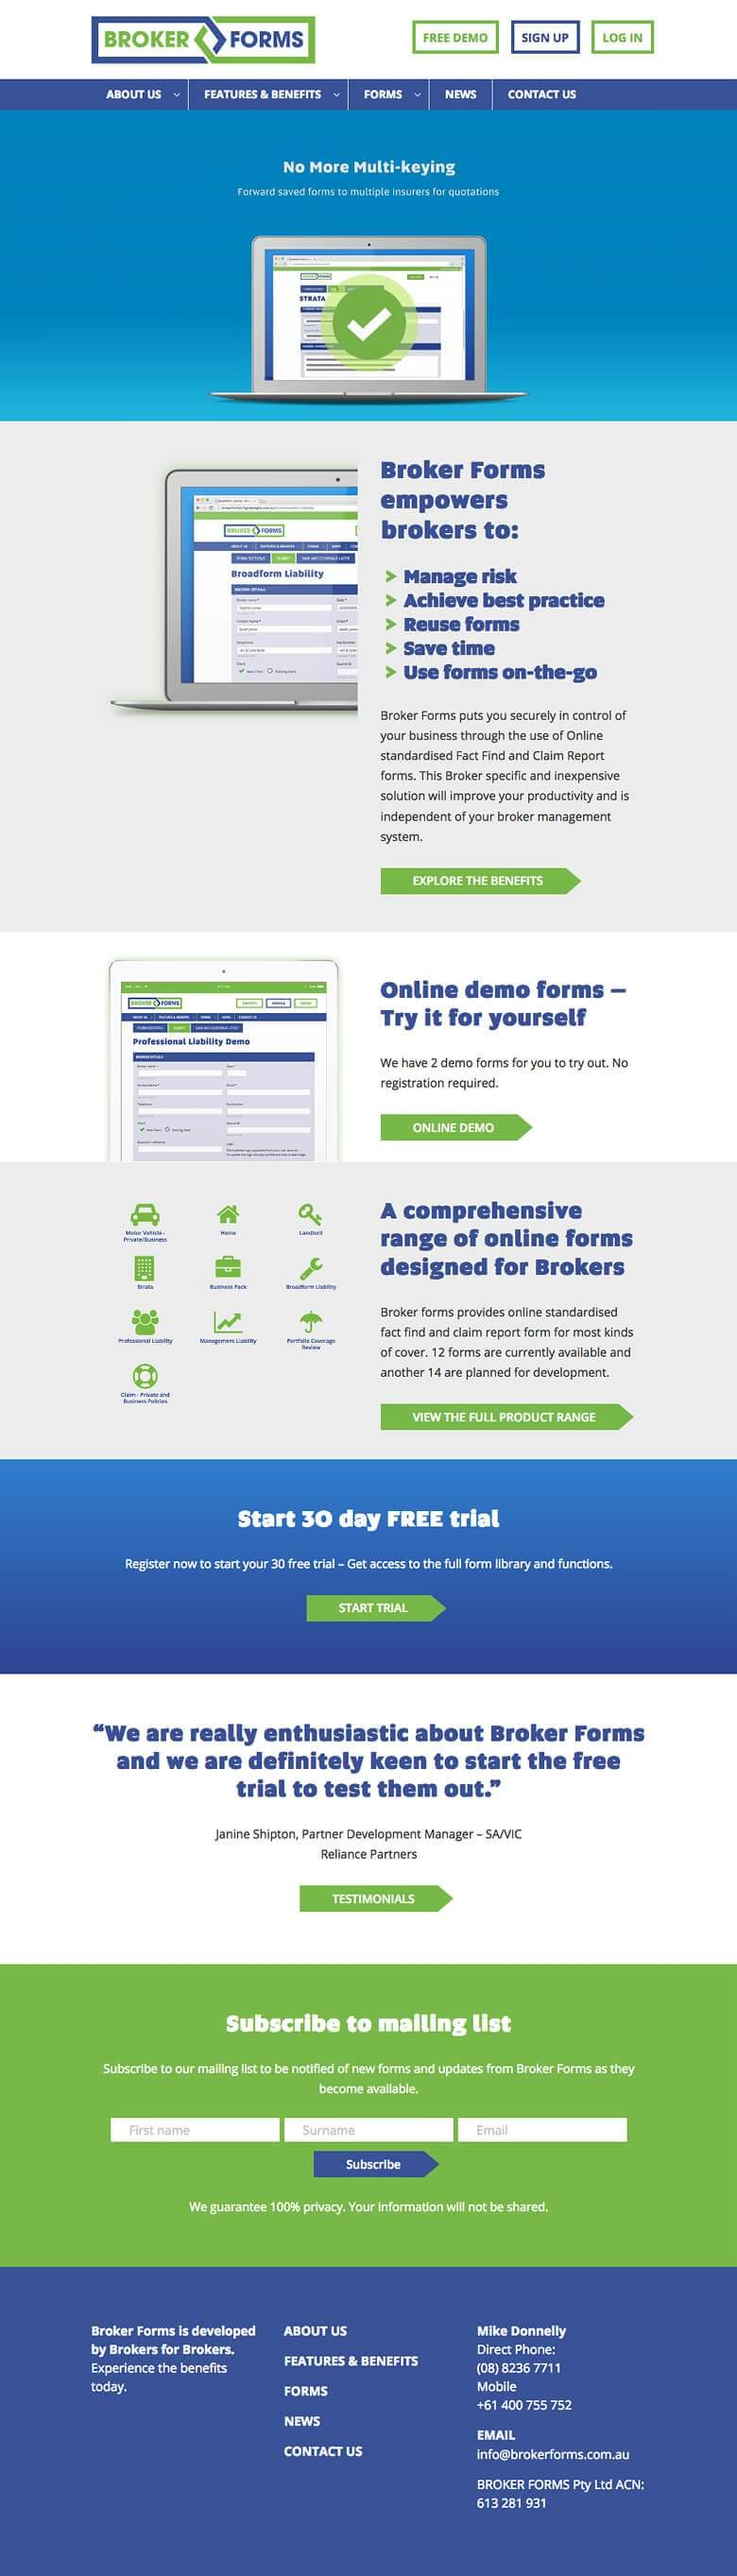 Broker forms - website